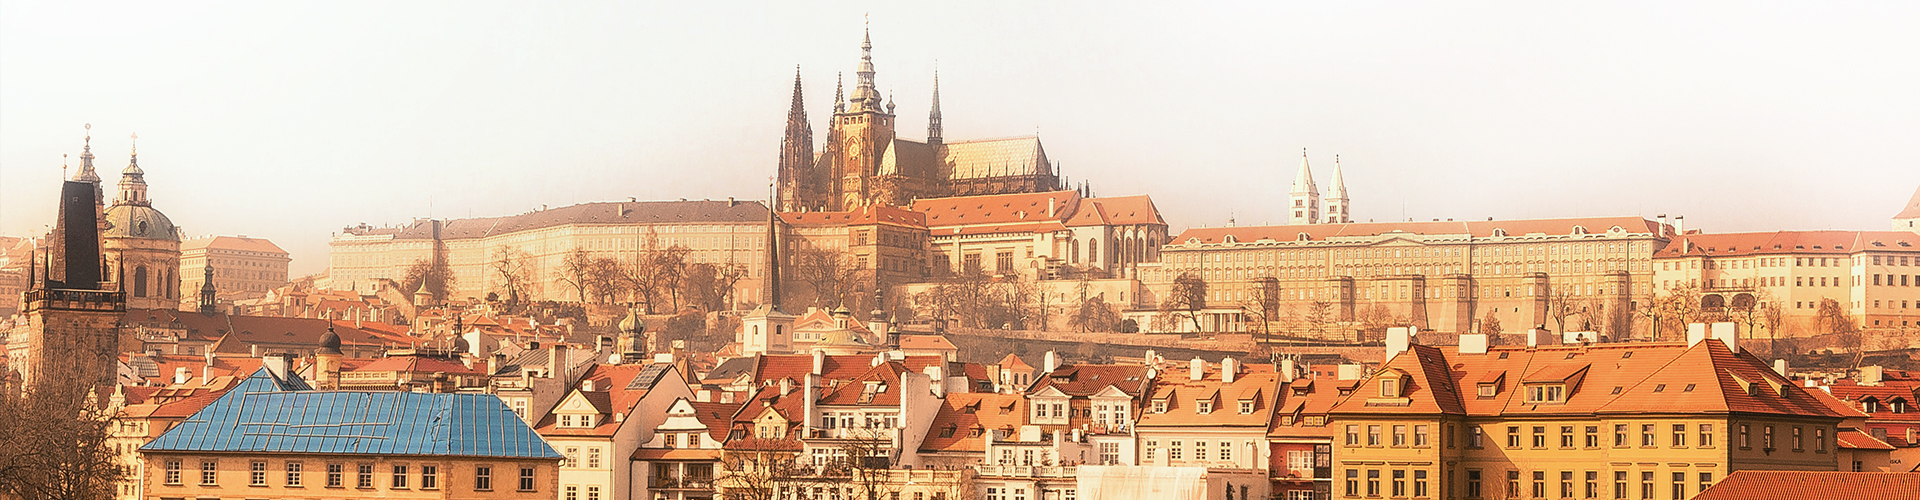 Central Europe: Architecture